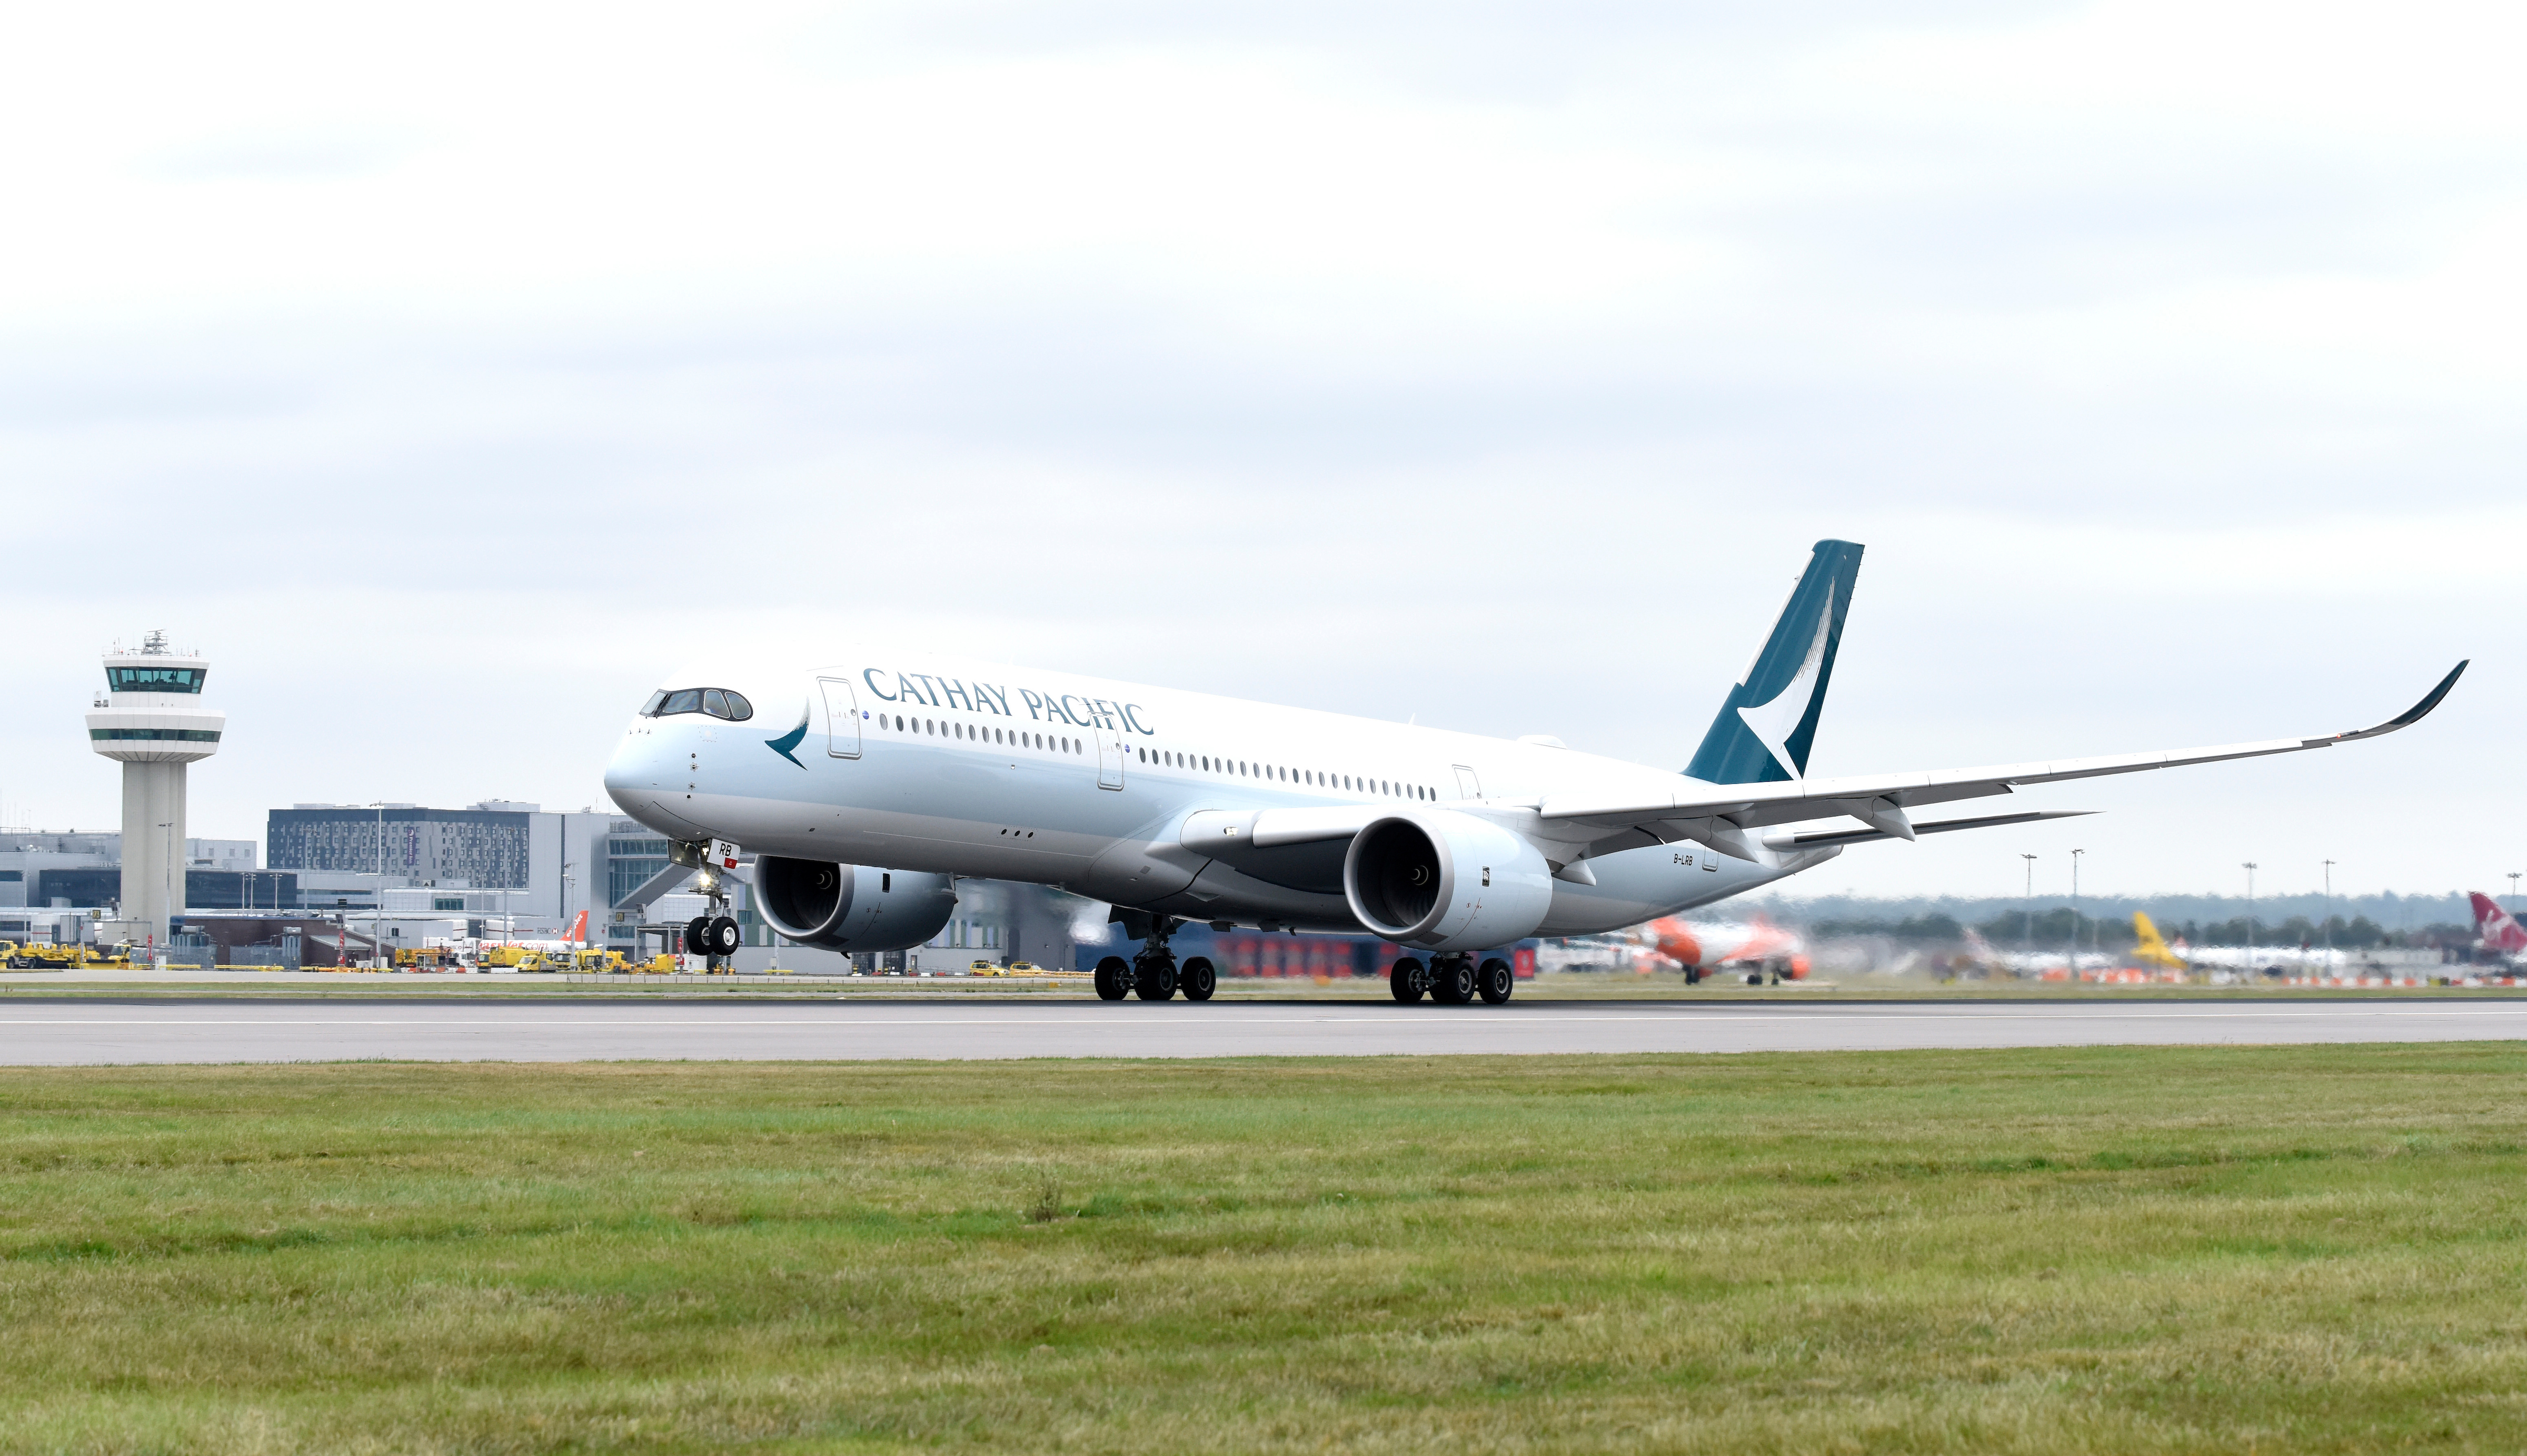 Cathay Pacific Airbus A350-900 XWB i London Gatwick Airport (Foto: Cathay Pacific)